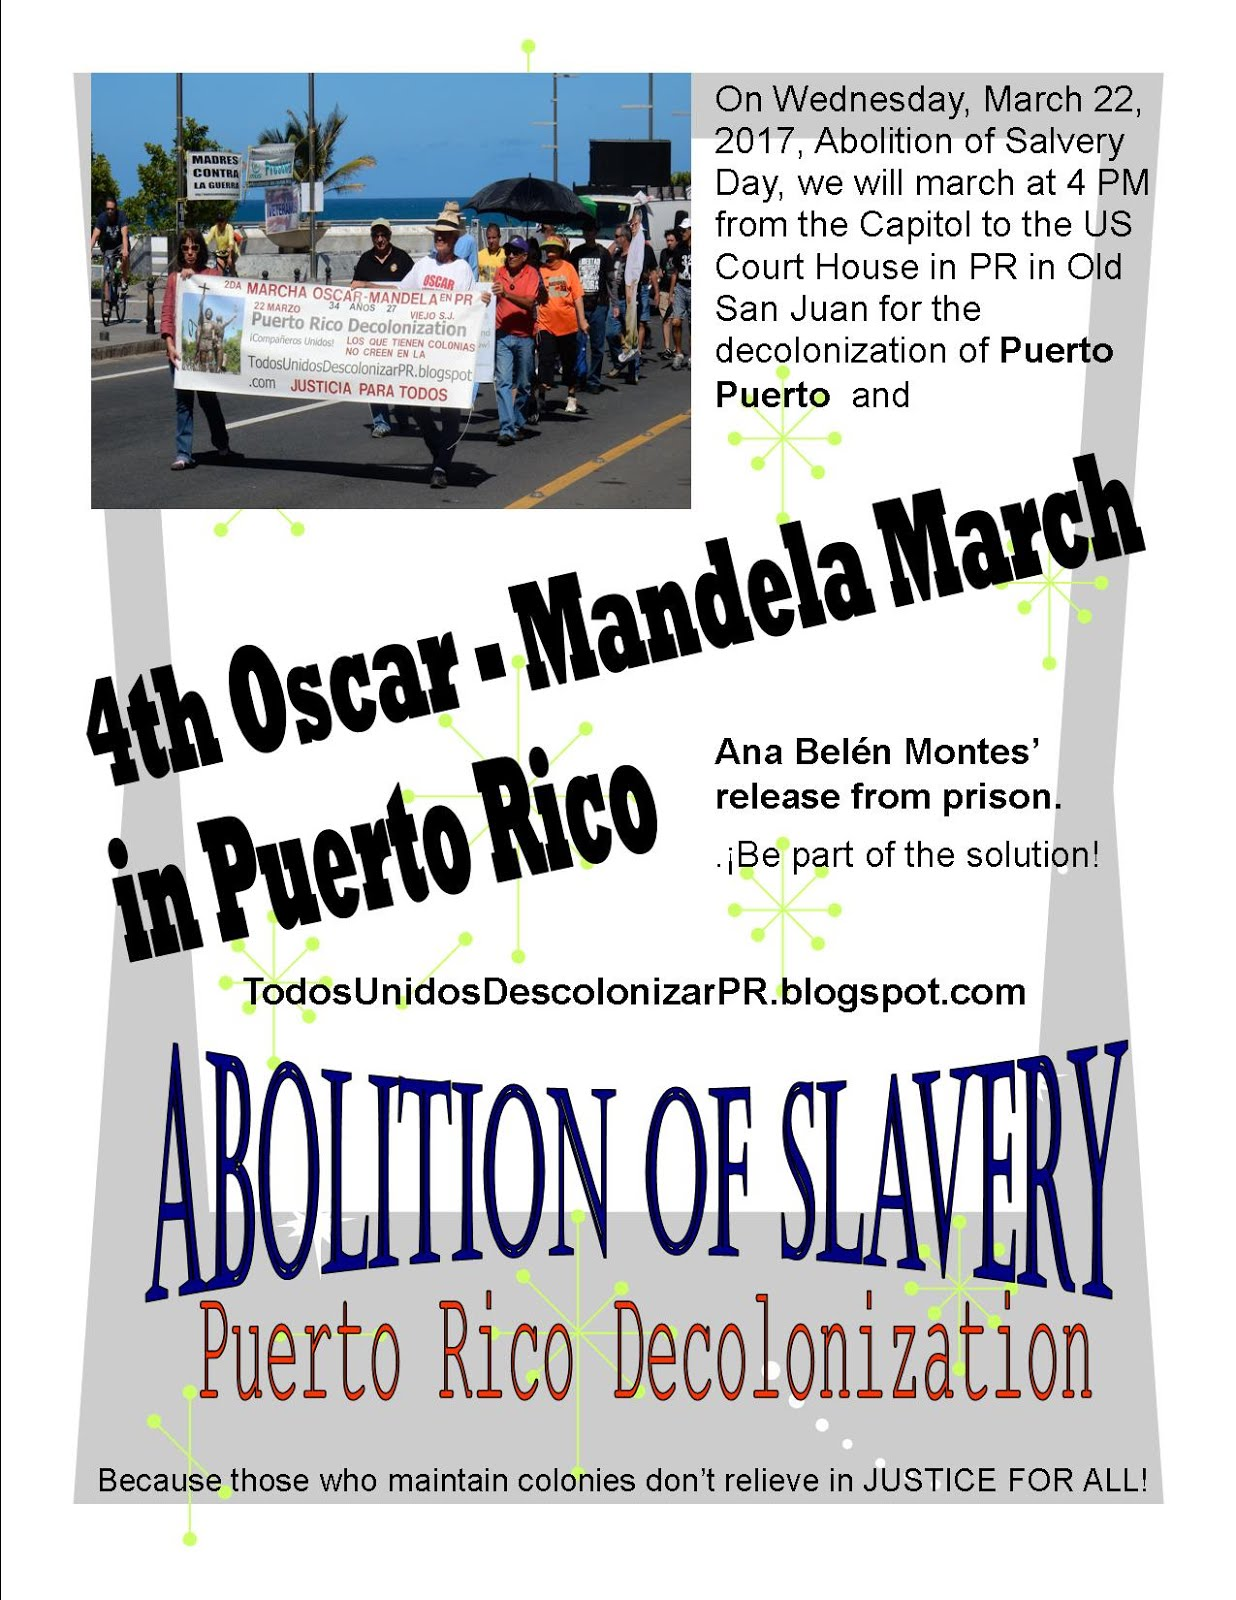 4th Oscar - Mandela March in PR 2017